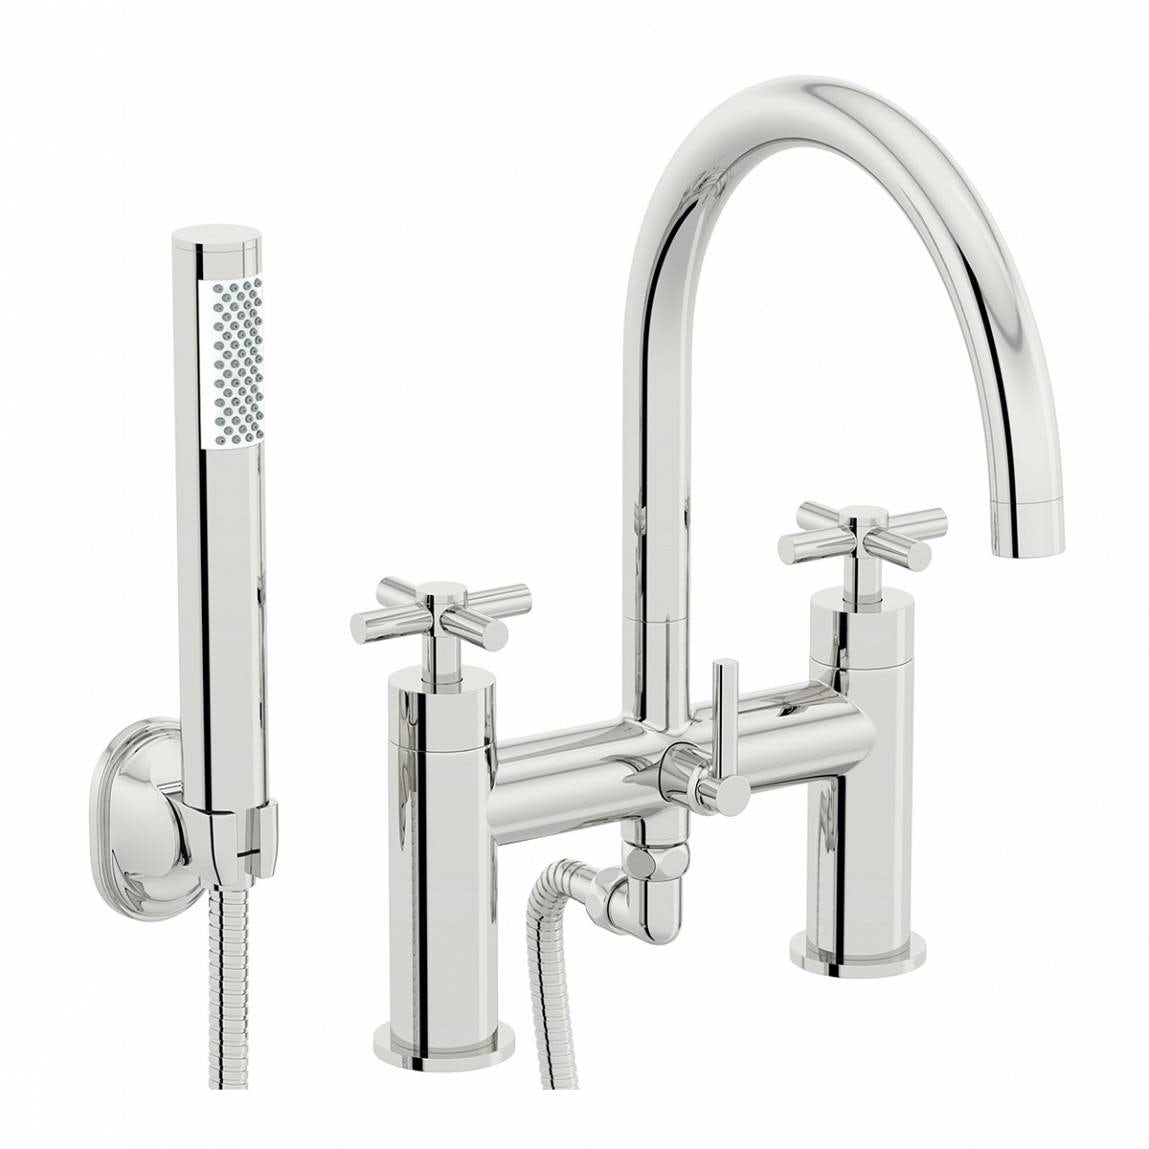 Mode Tate bath shower mixer tap